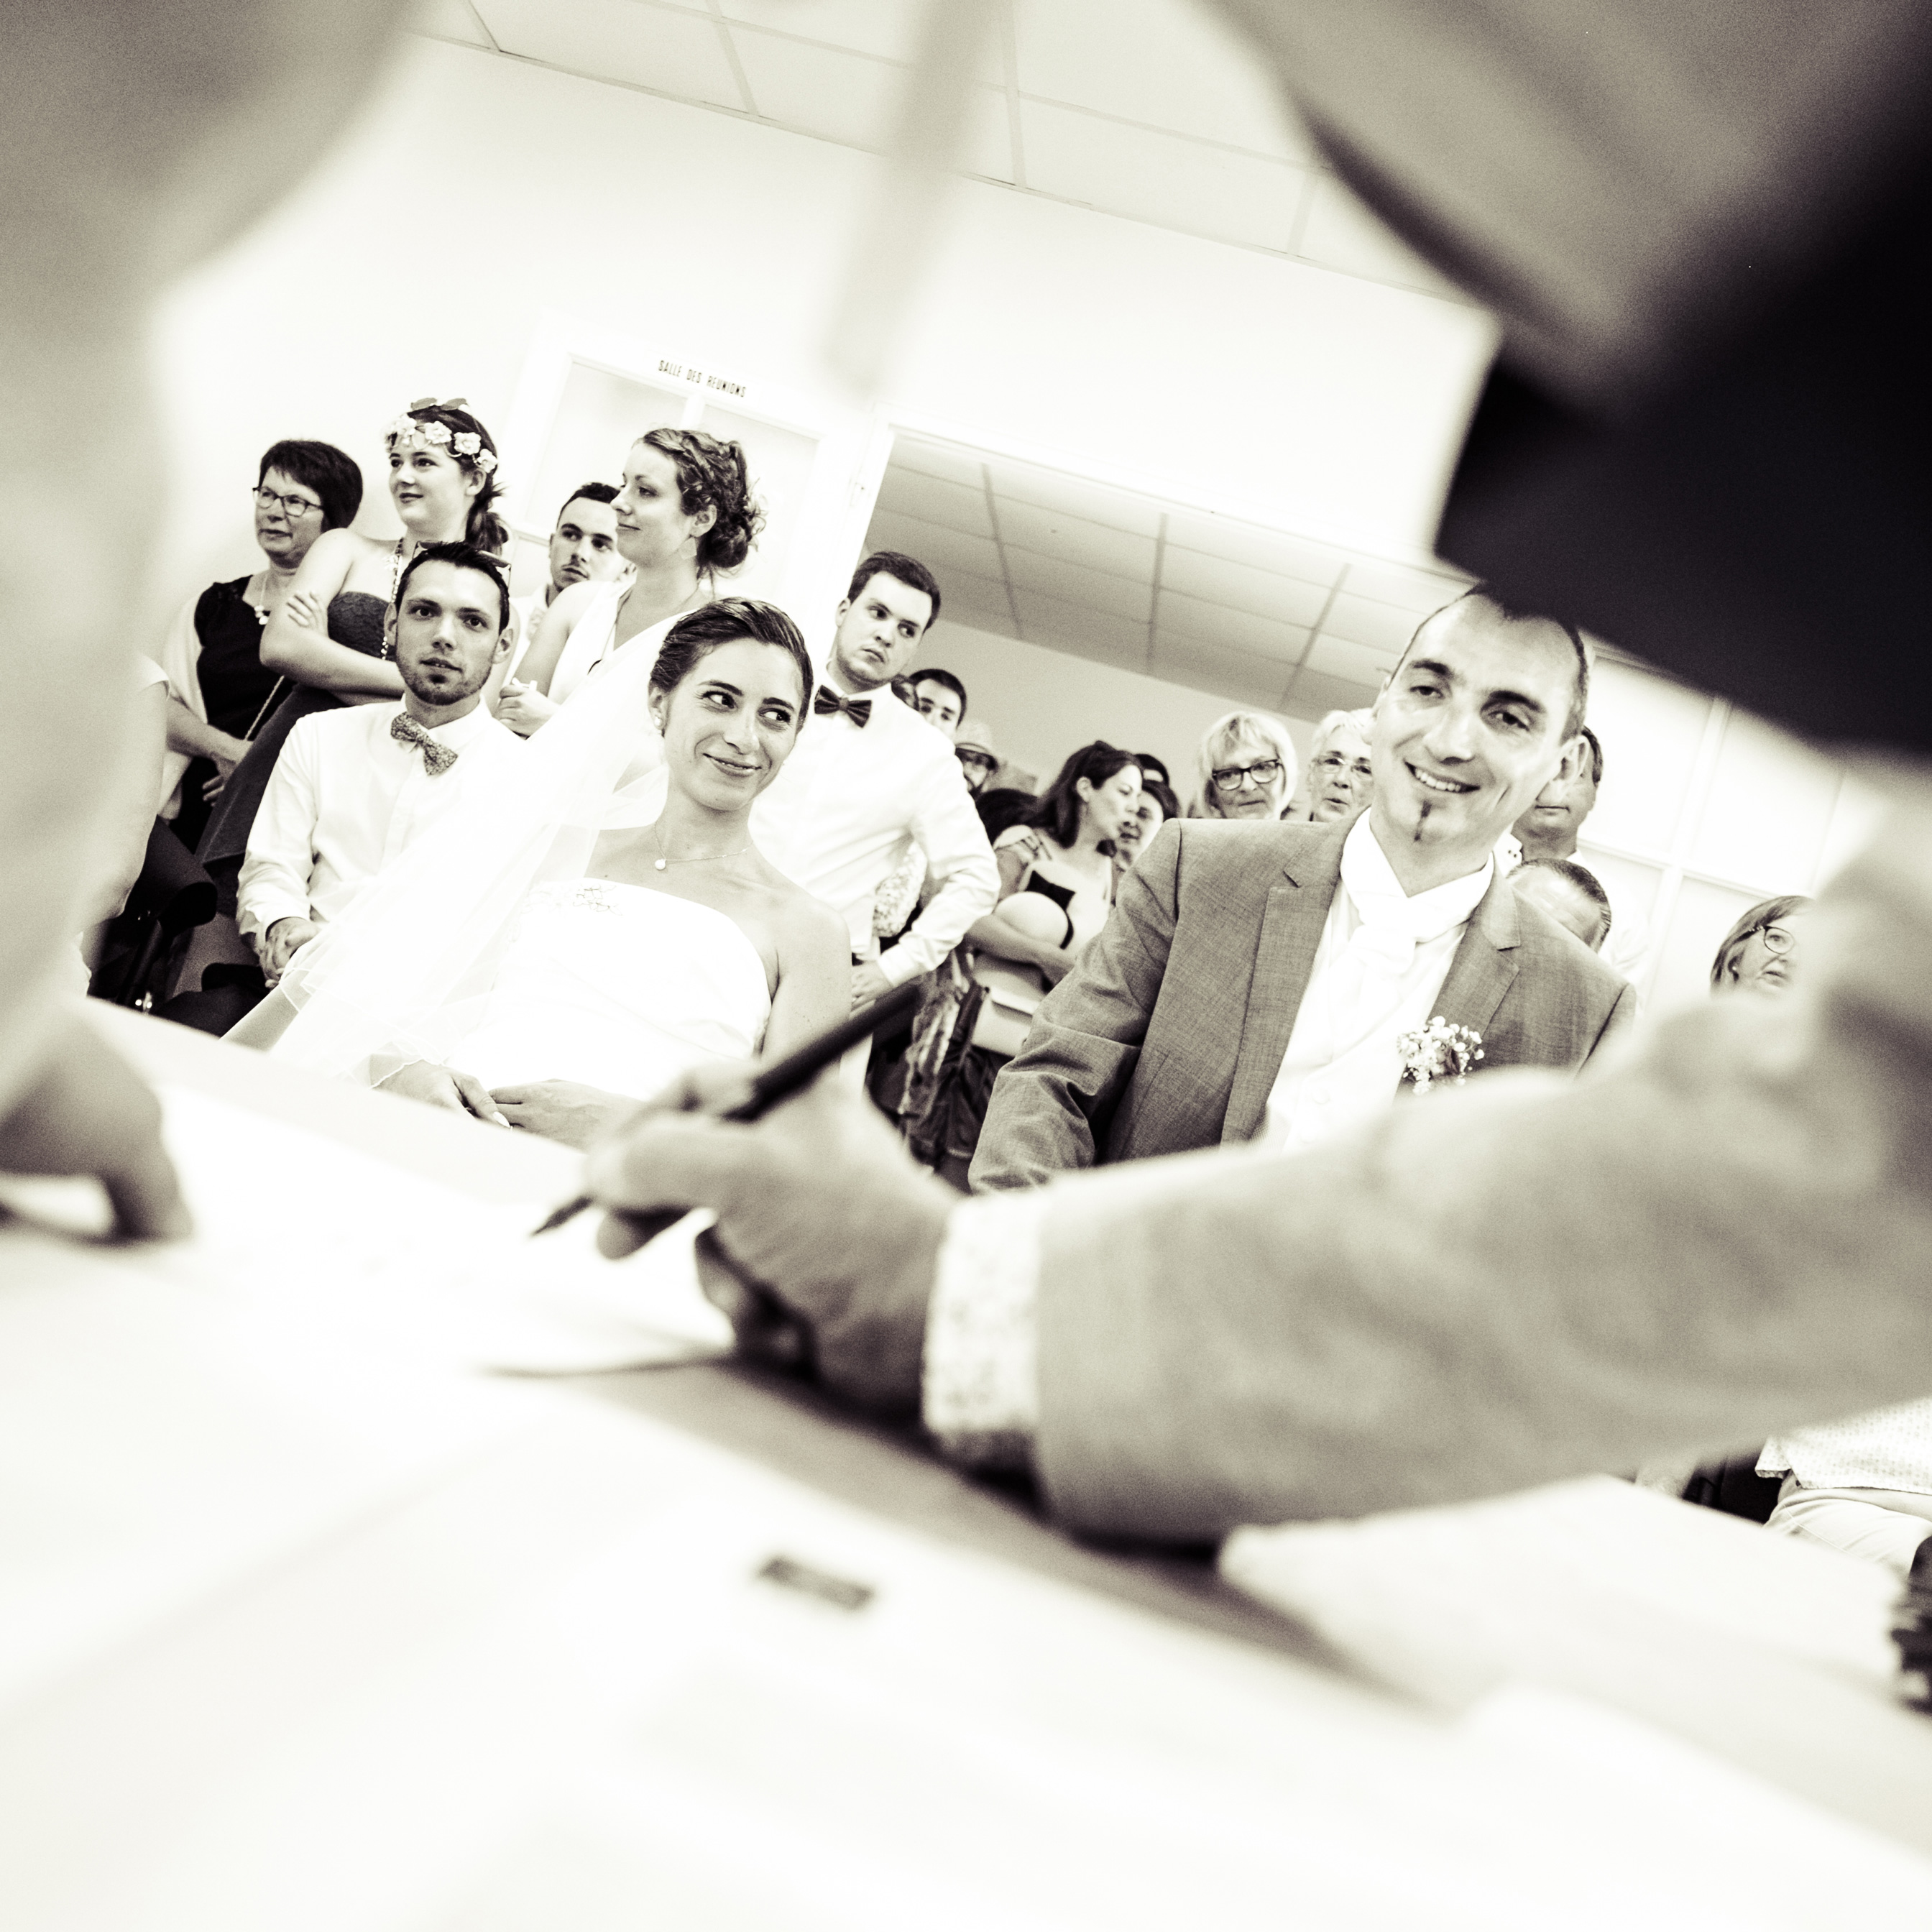 Magnificence Photographie Video Mariage Occitanie Aveyron Toulouse 00026